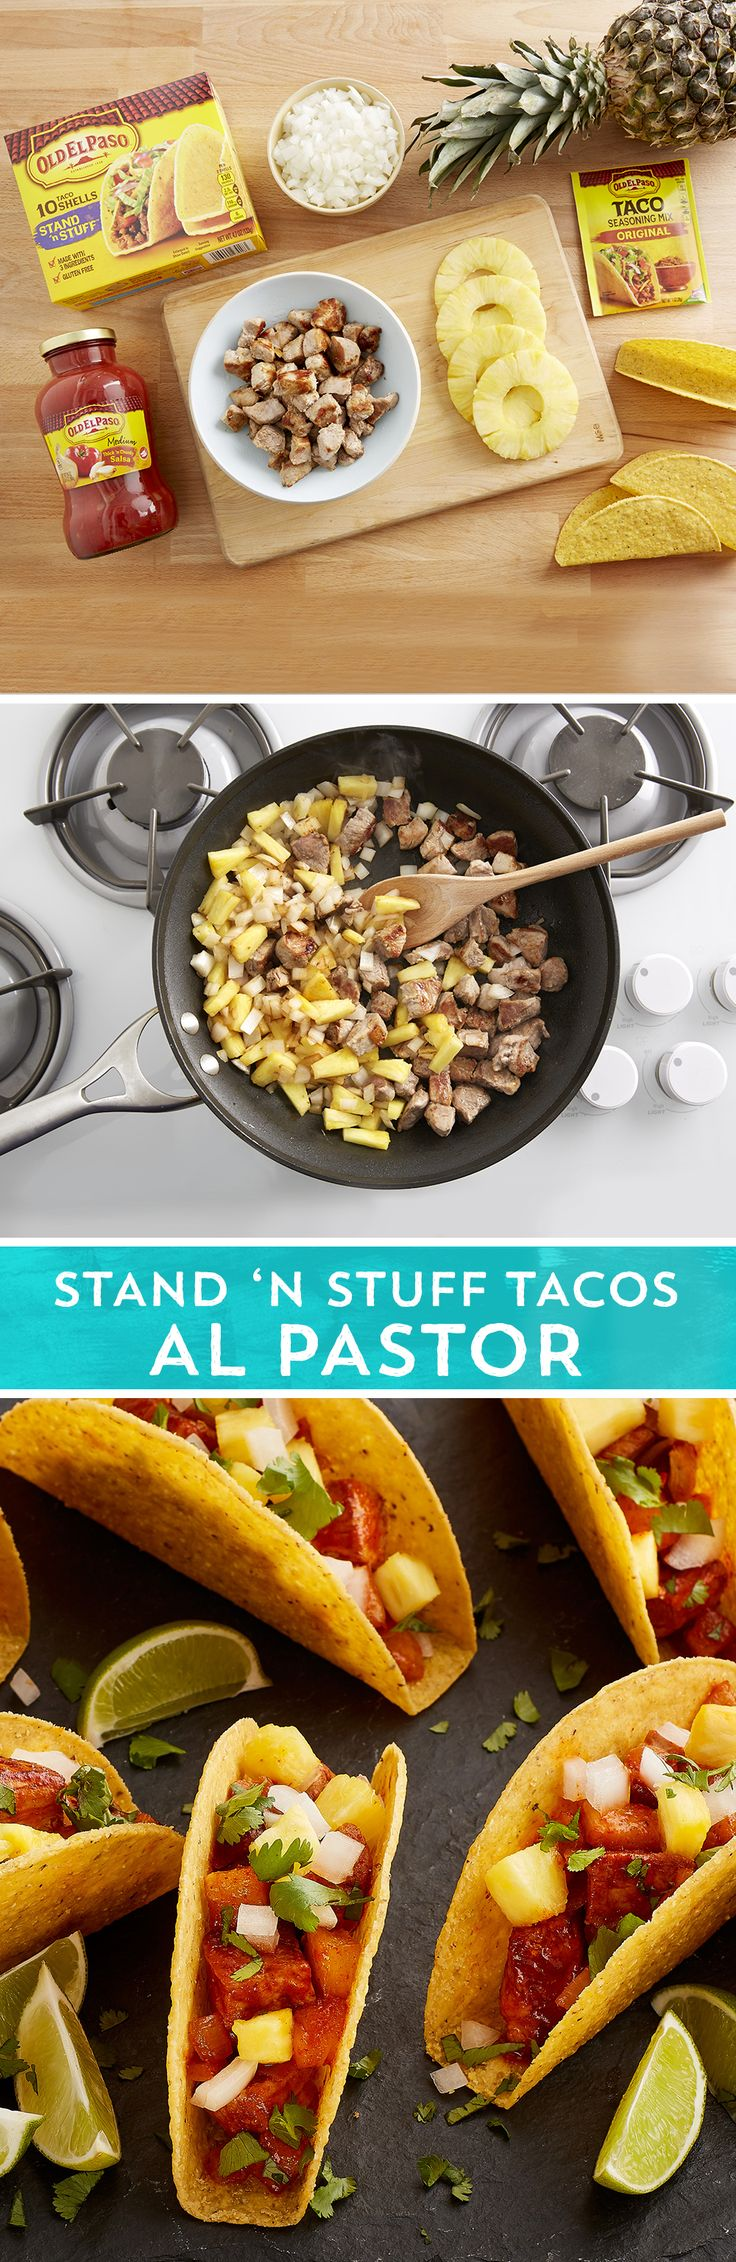 The classic pineapple, onion, and rotisserie pork flavors of al pastor come together quickly and easily in this skillet riff on the original, using pork tenderloin and Old El Paso Stand 'N Stuff™ taco shells.